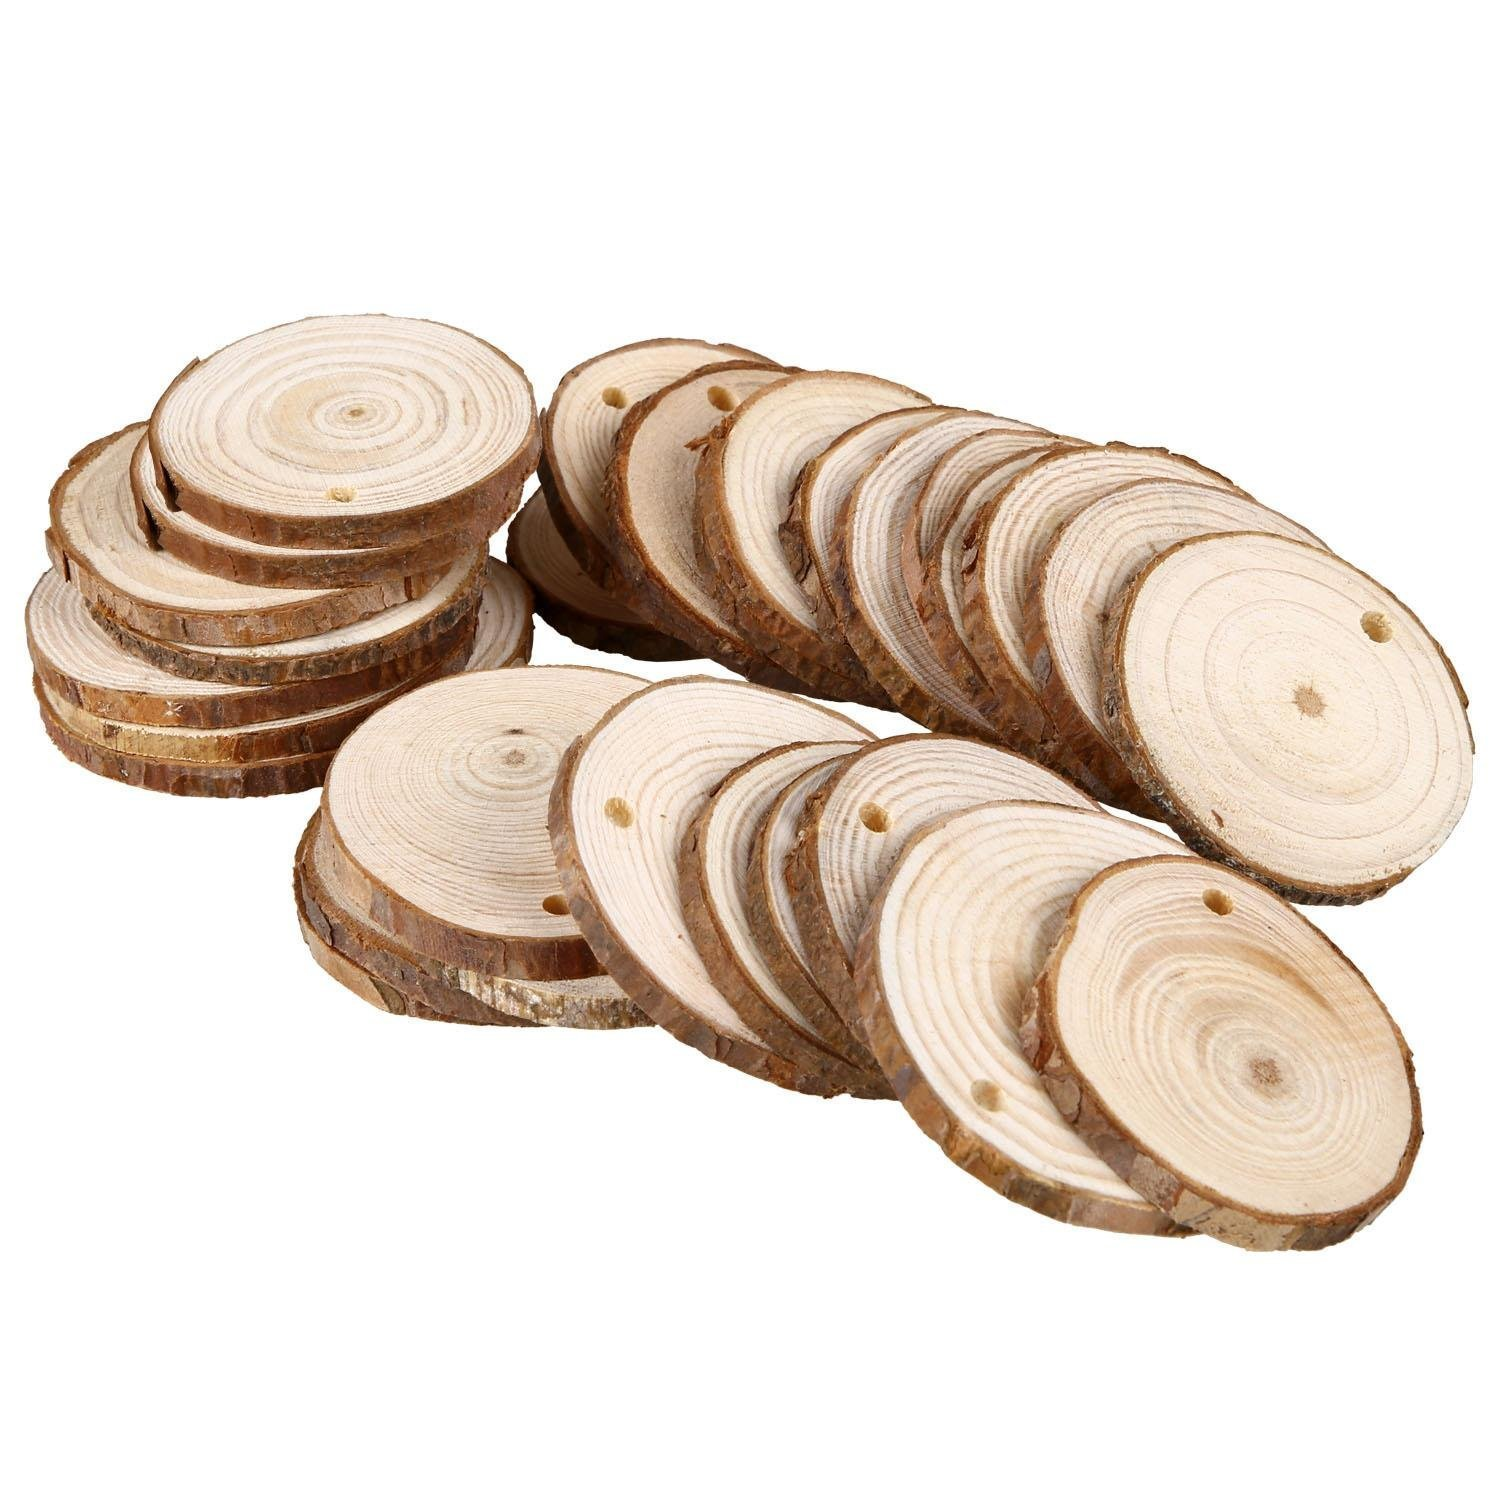 Wooden circles for crafts - Soledi 30pcs Natural Wood Slices Round Discs Tree Bark Wooden Circles For Diy Crafts